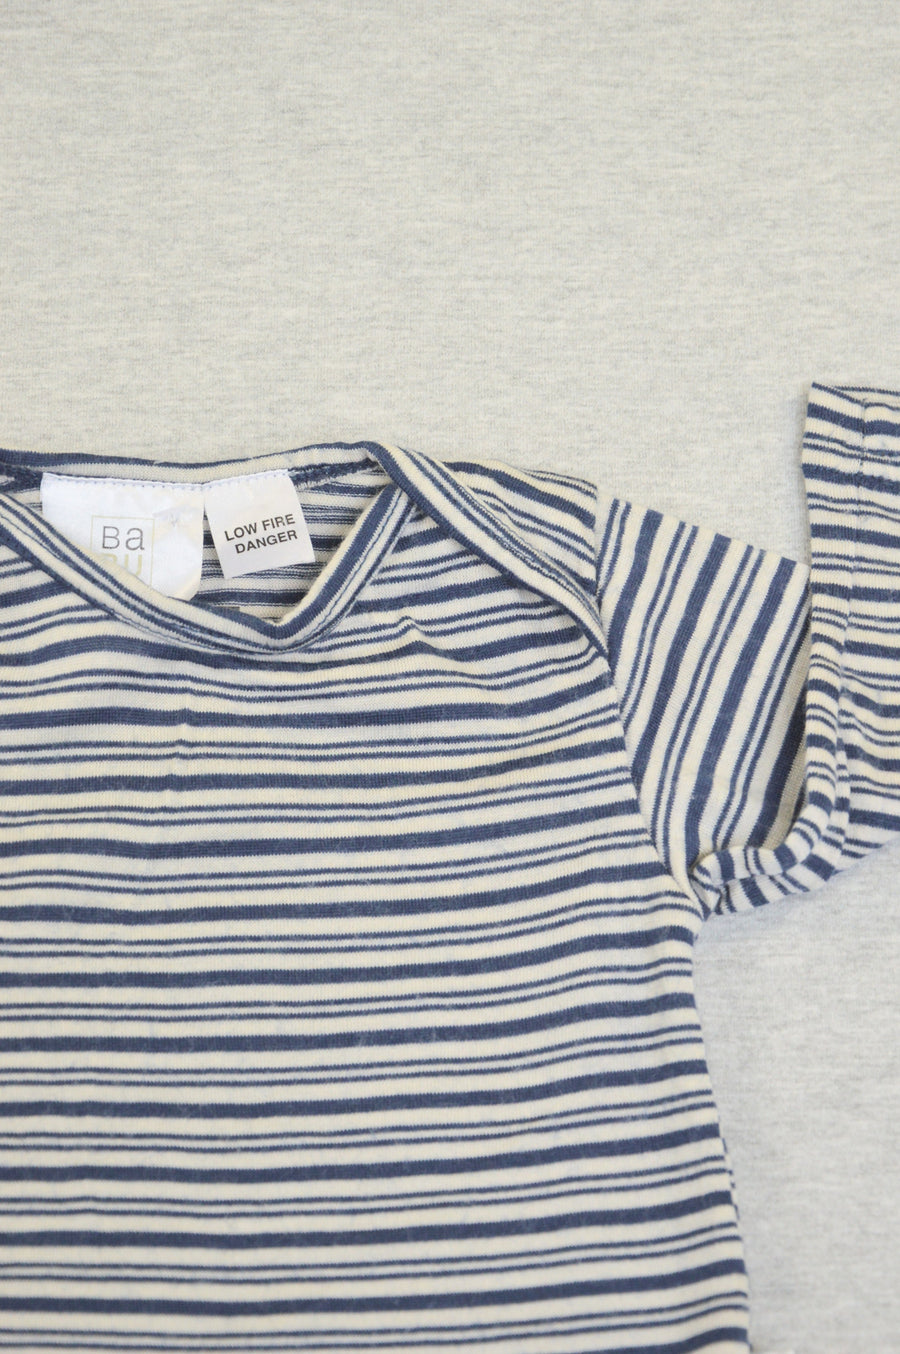 BaBU - nearly new - navy & cream striped merino t-shirt, size 0-3m